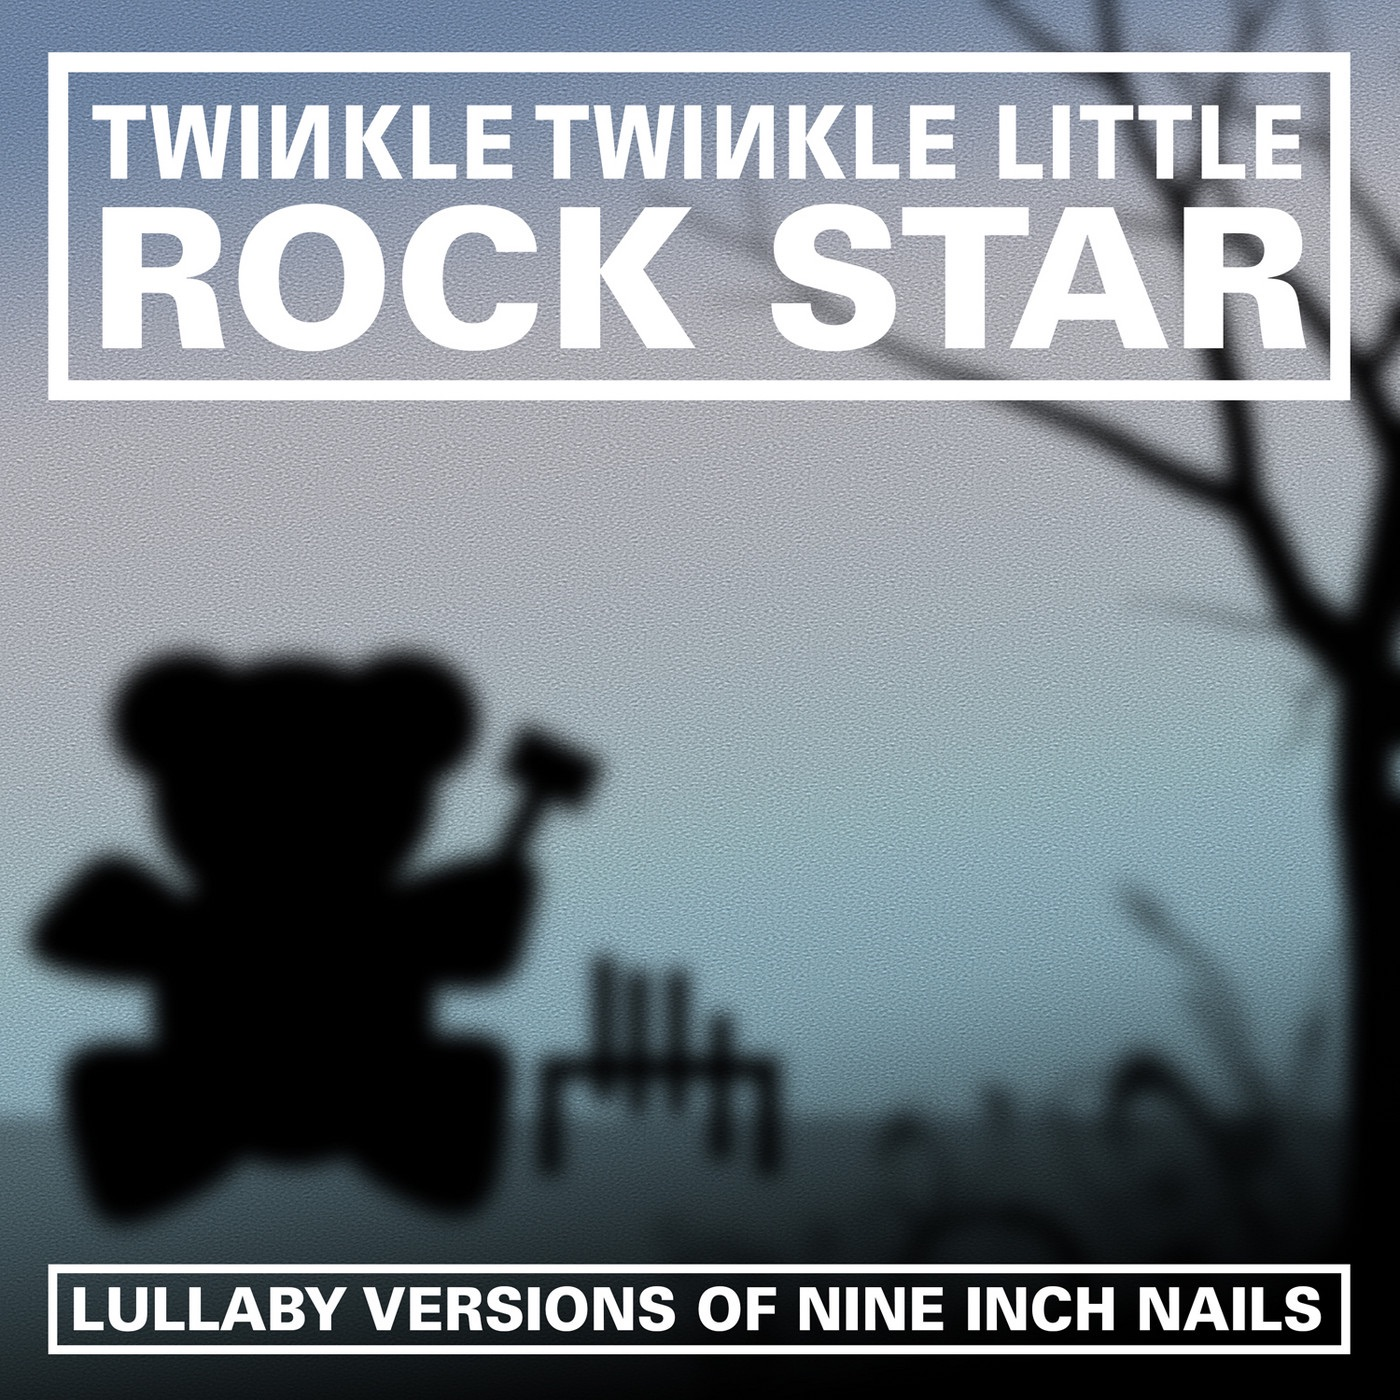 Download album: Lullaby Versions of Nine Inch Nails - artist Twinkle ...